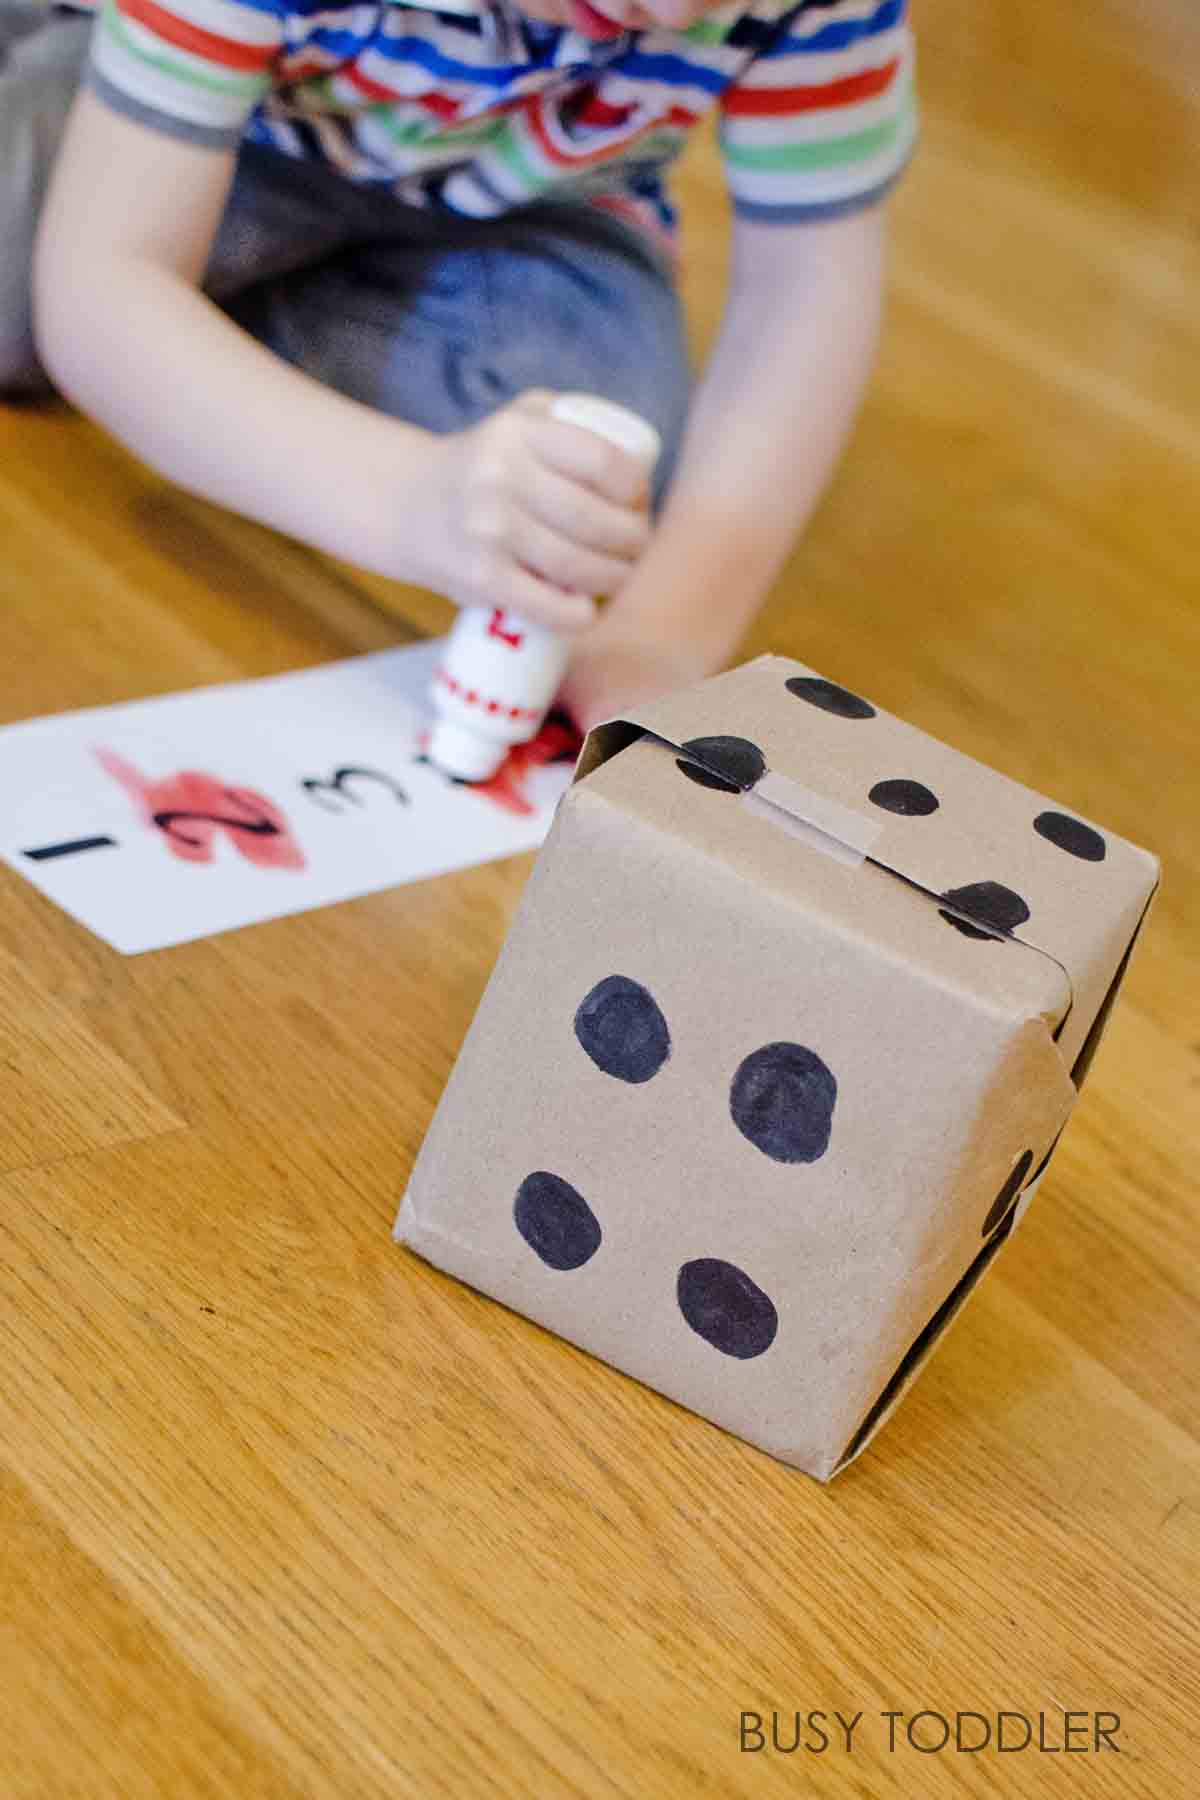 ROLL & CROSS: What a fun and easy math game for kids of all ages! This is a perfect number recognition and counting game for toddlers and preschoolers. They will love playing with this homemade dice and racing to cross out the numbers!